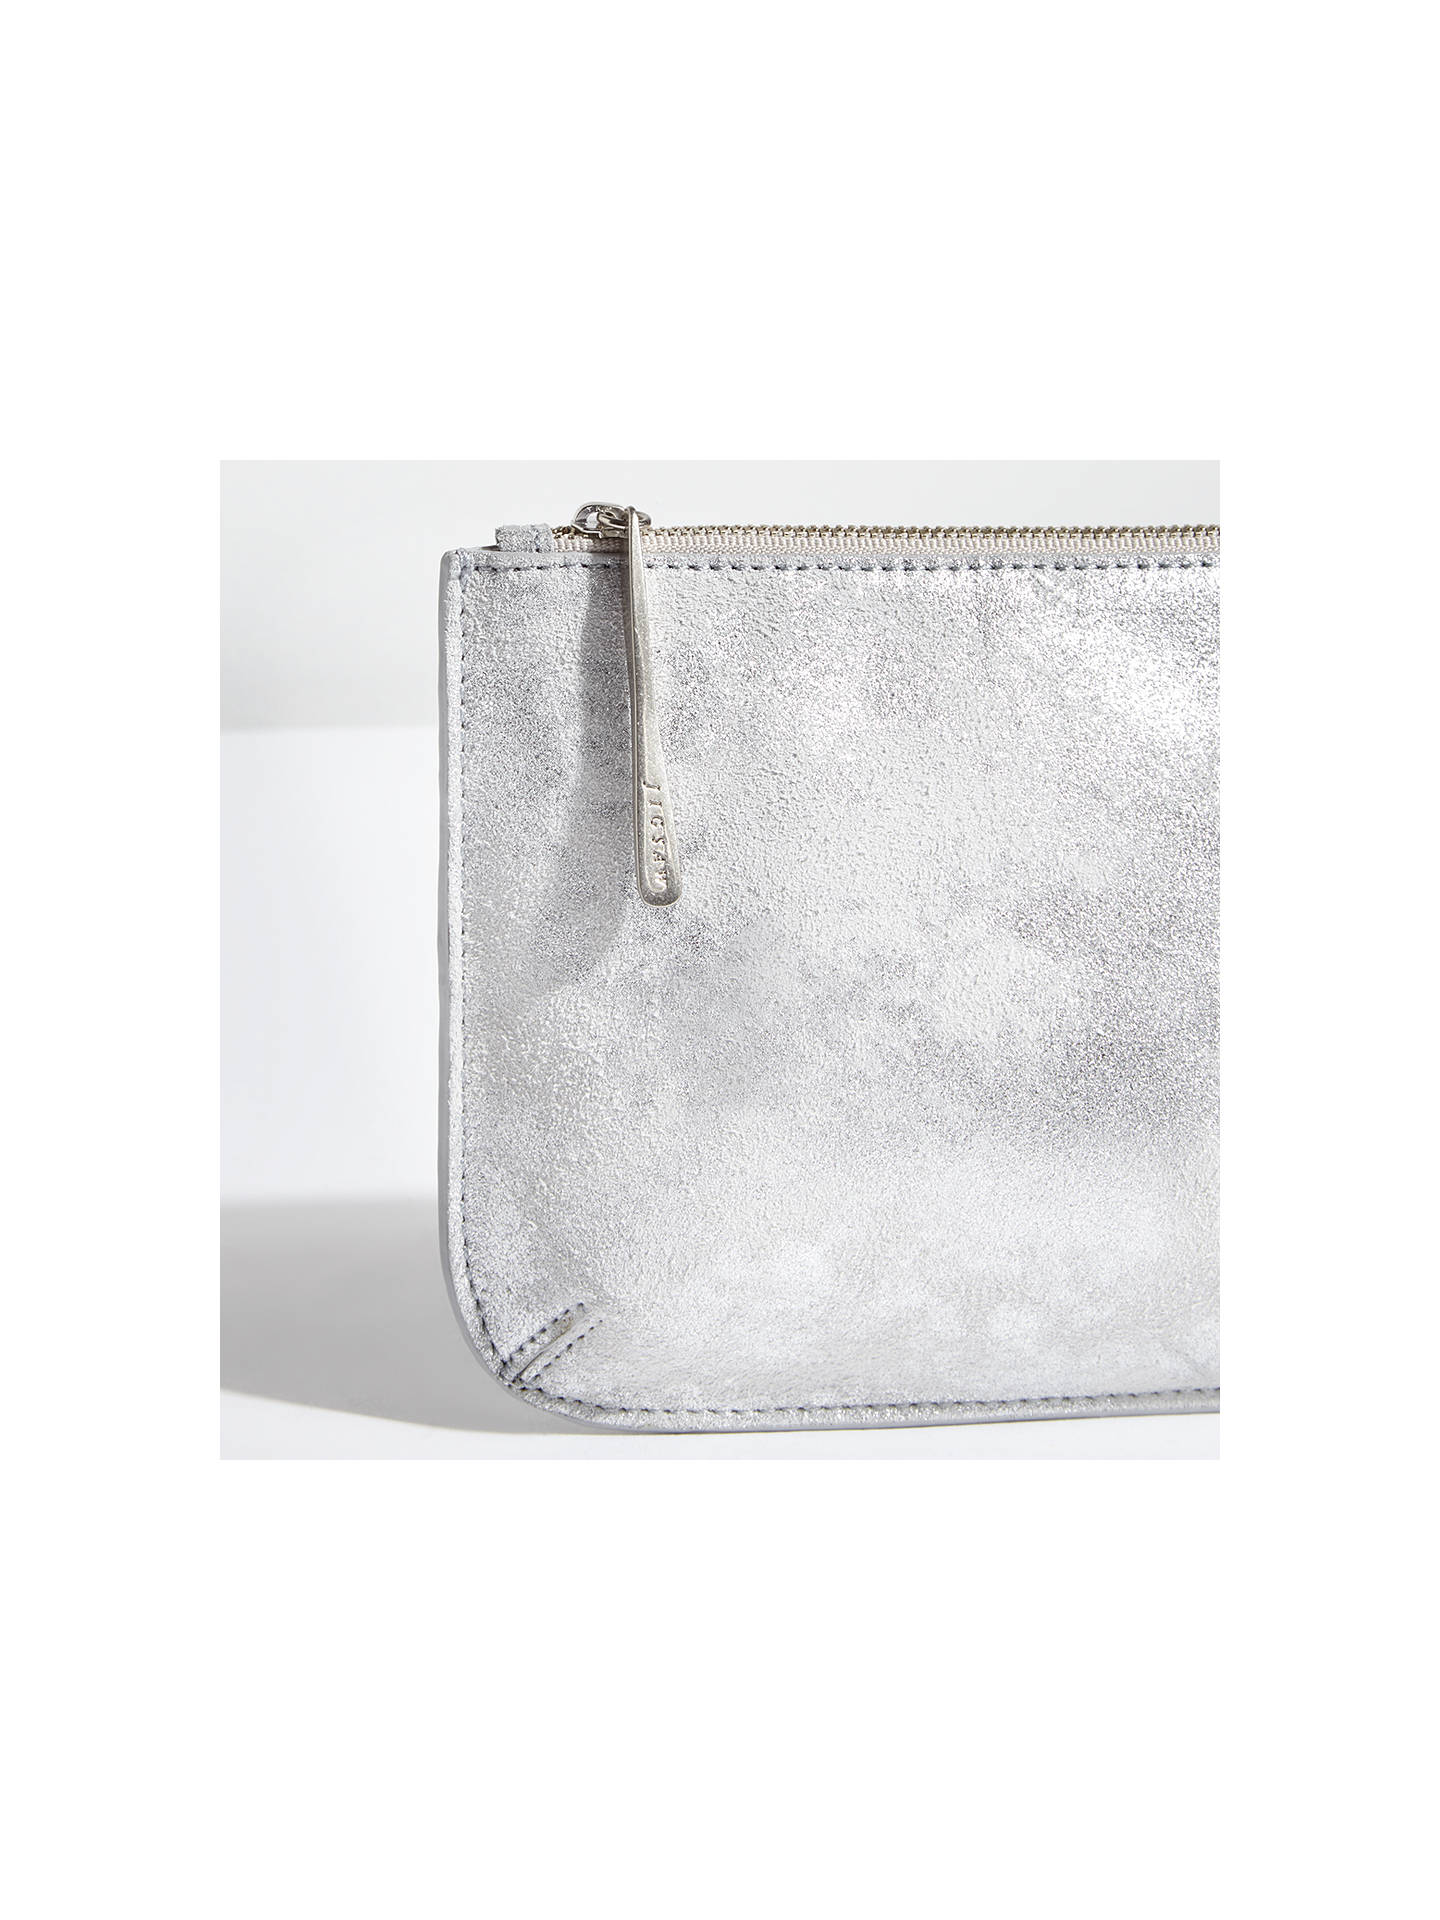 e6b36bdbf24 ... Buy Jigsaw Alba Medium Textured Leather Pouch, Silver Online at  johnlewis.com